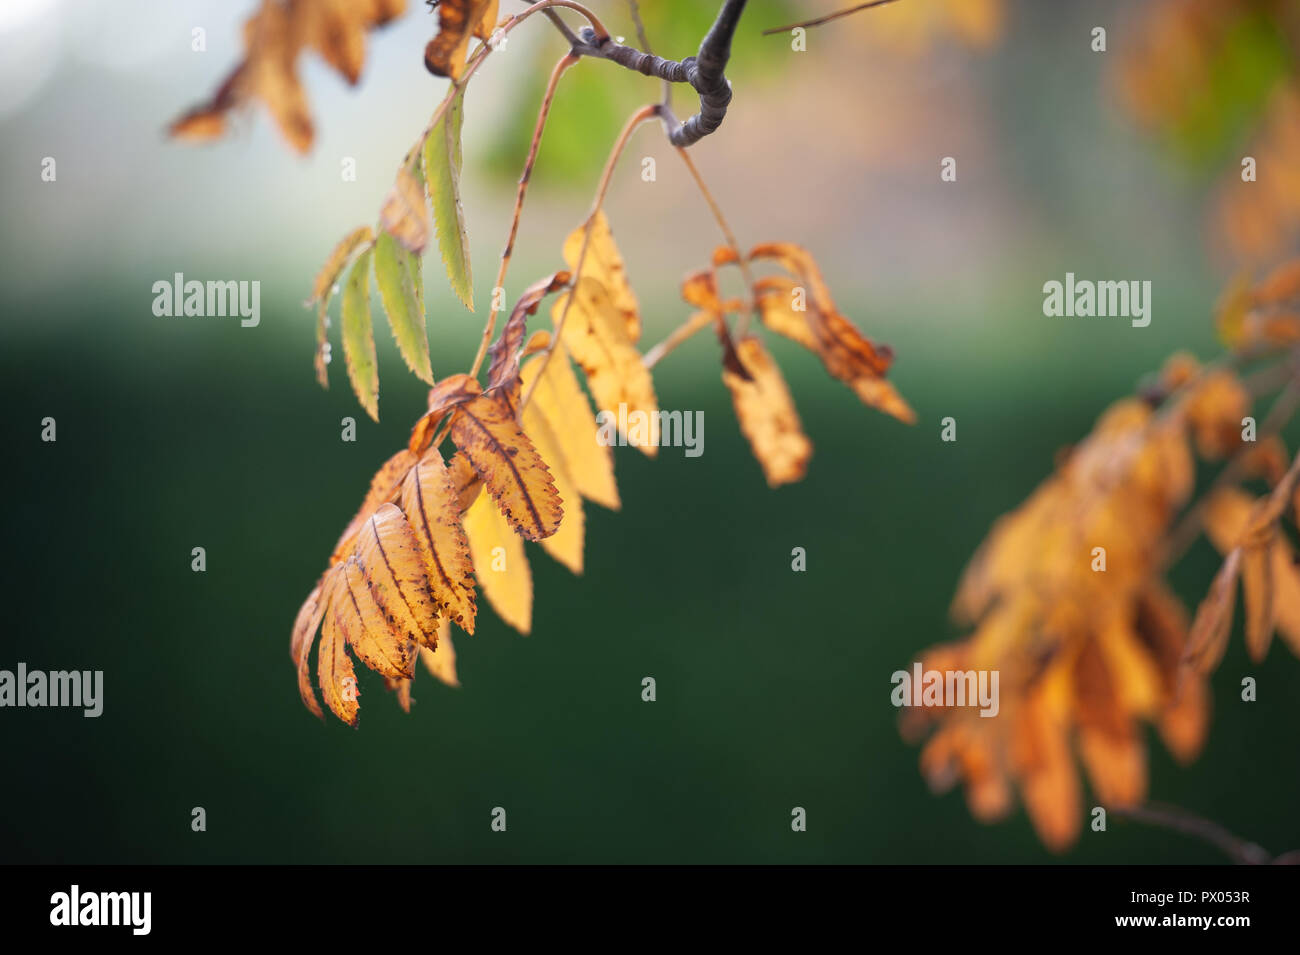 Rowan (Mountain Ash) leaves in their Autumn (Fall) plumage. - Stock Image